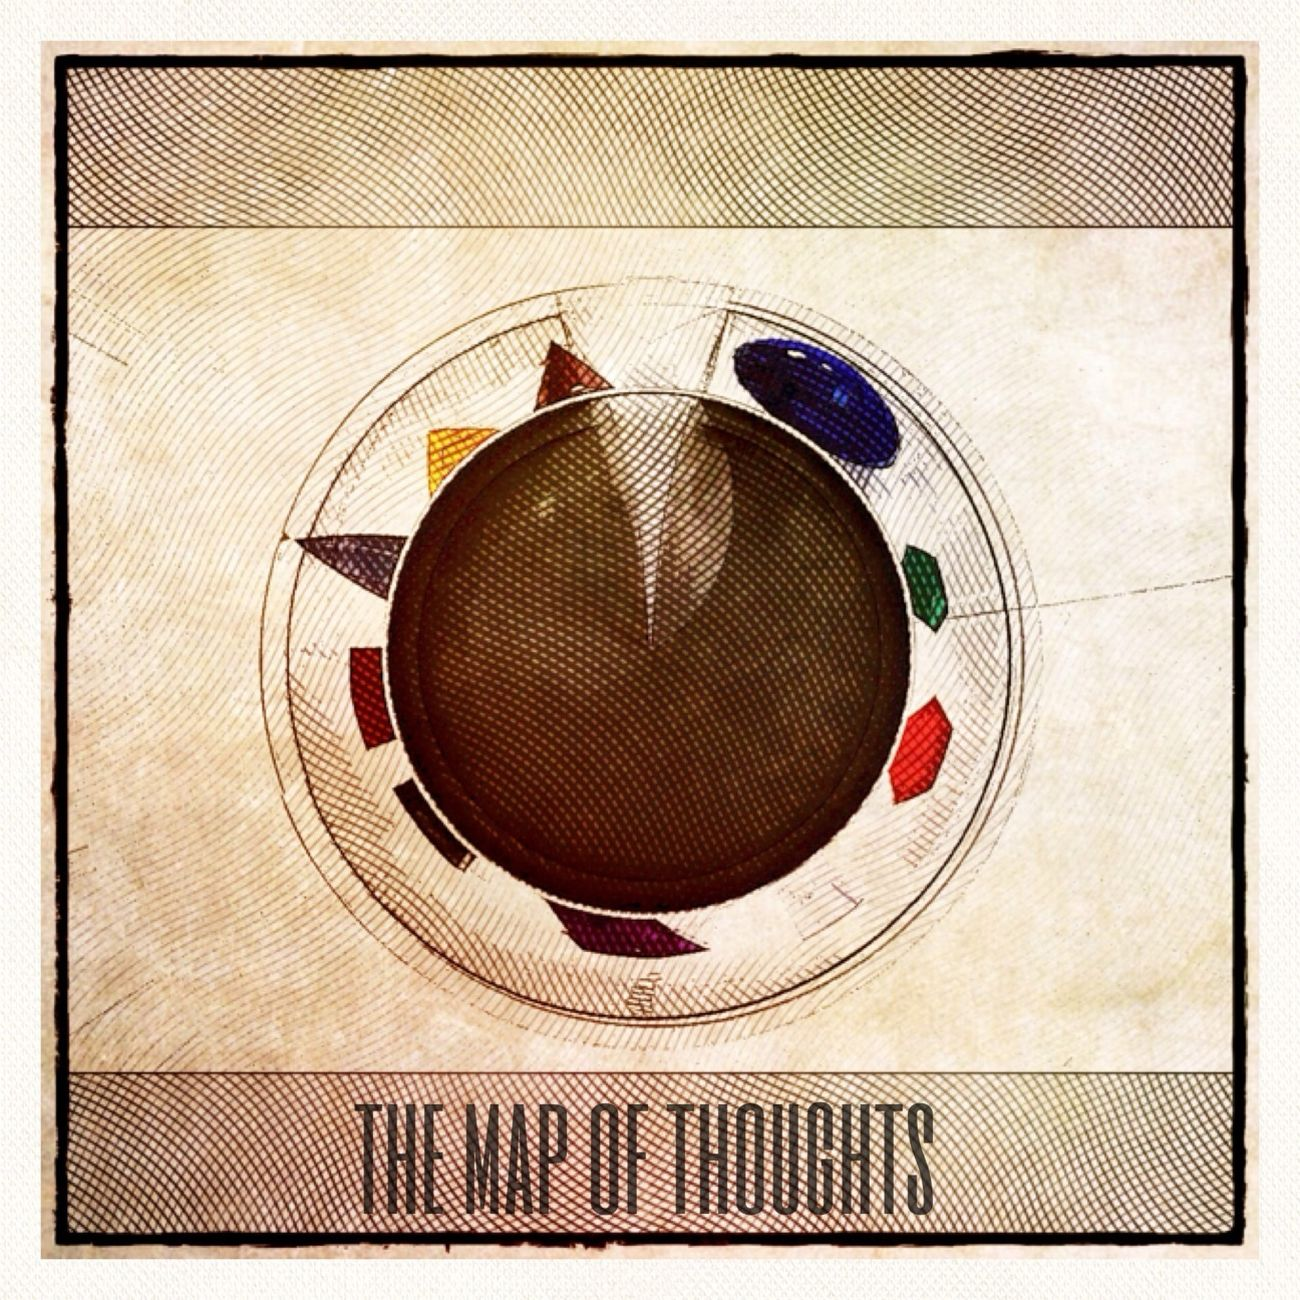 The map of thoughts